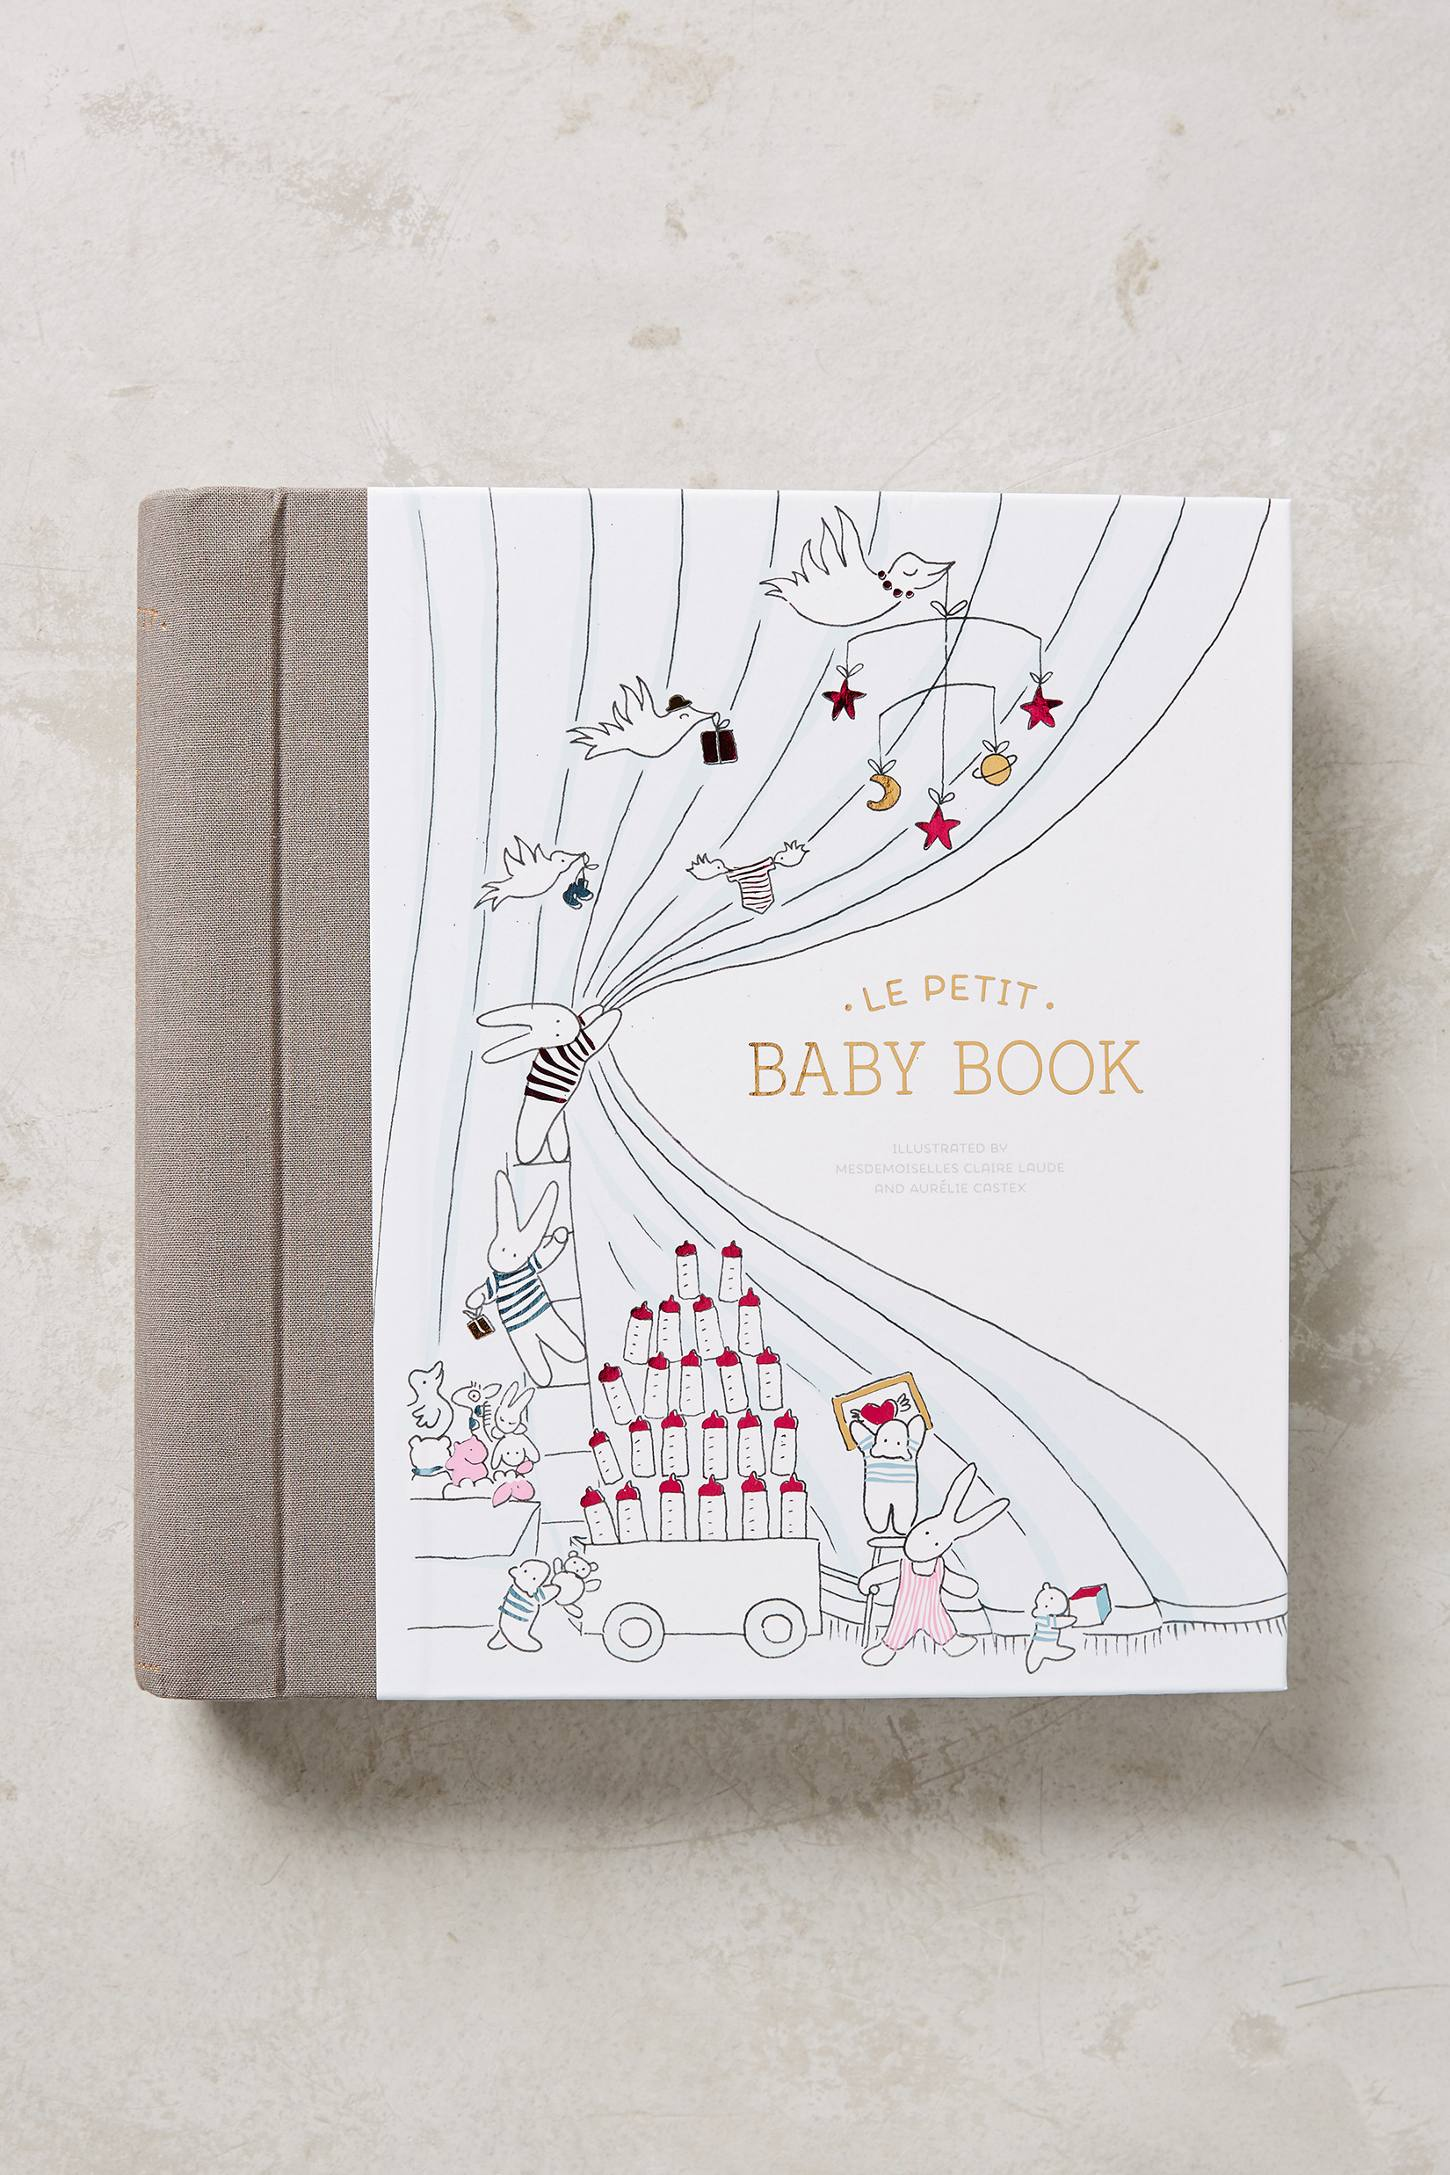 Slide View: 1: Le Petit Baby Book